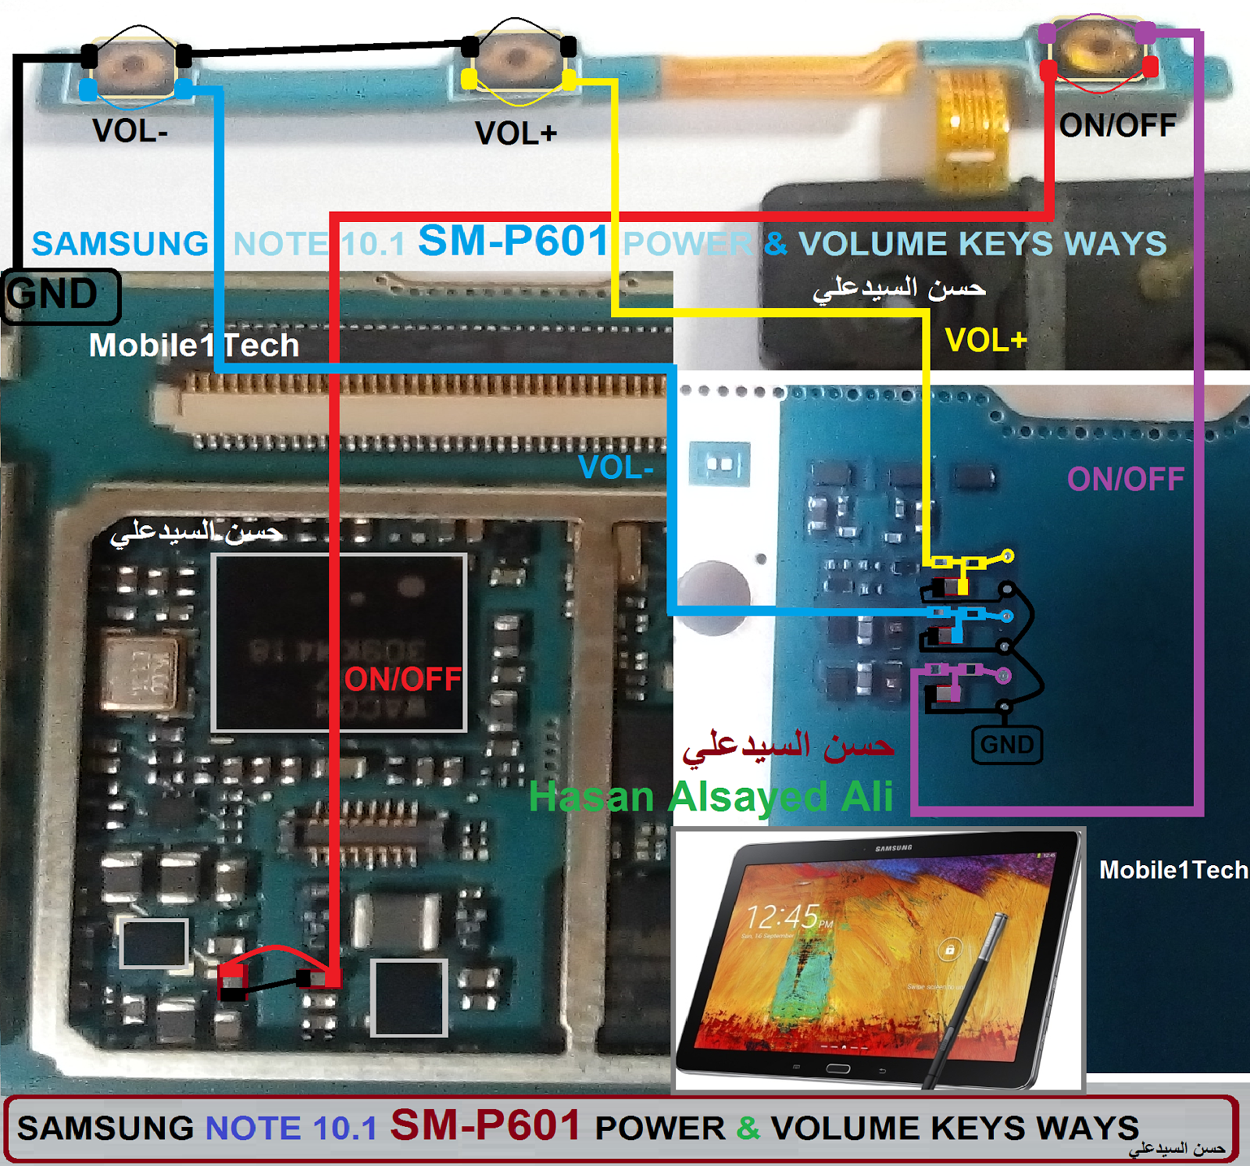 Samsung young 2 sm g130h power on off key jumper track ways - Samsung Galaxy Note 10 1 P600 Power Button Solution Samsung Galaxy Note 10 1 P600 Power On Off Key Button Switch Jumper Ways